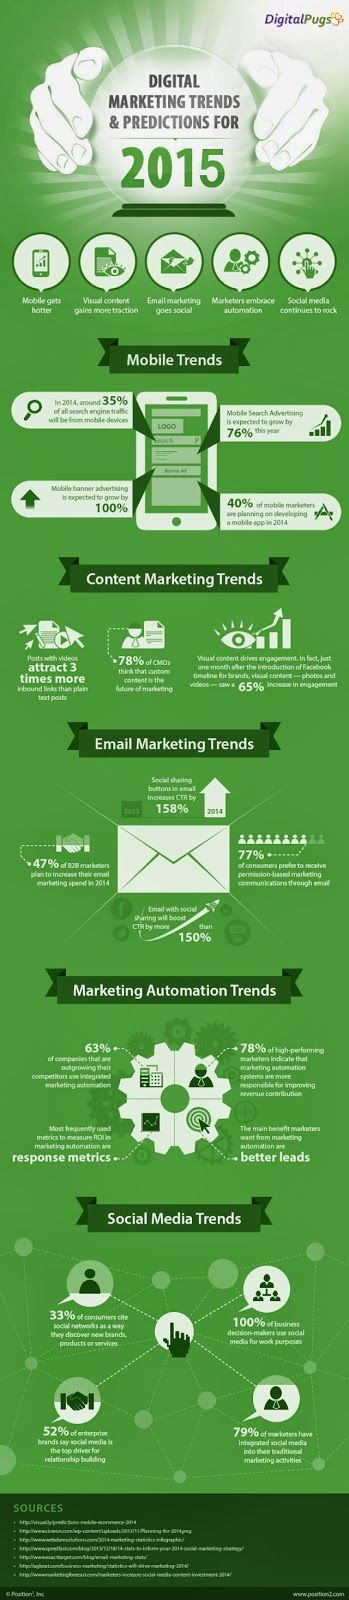 Digital Marketing Best Trends & Predictions for 2015 With Infographic...... http://bit.ly/1wCszpM http://www.intelisystems.com